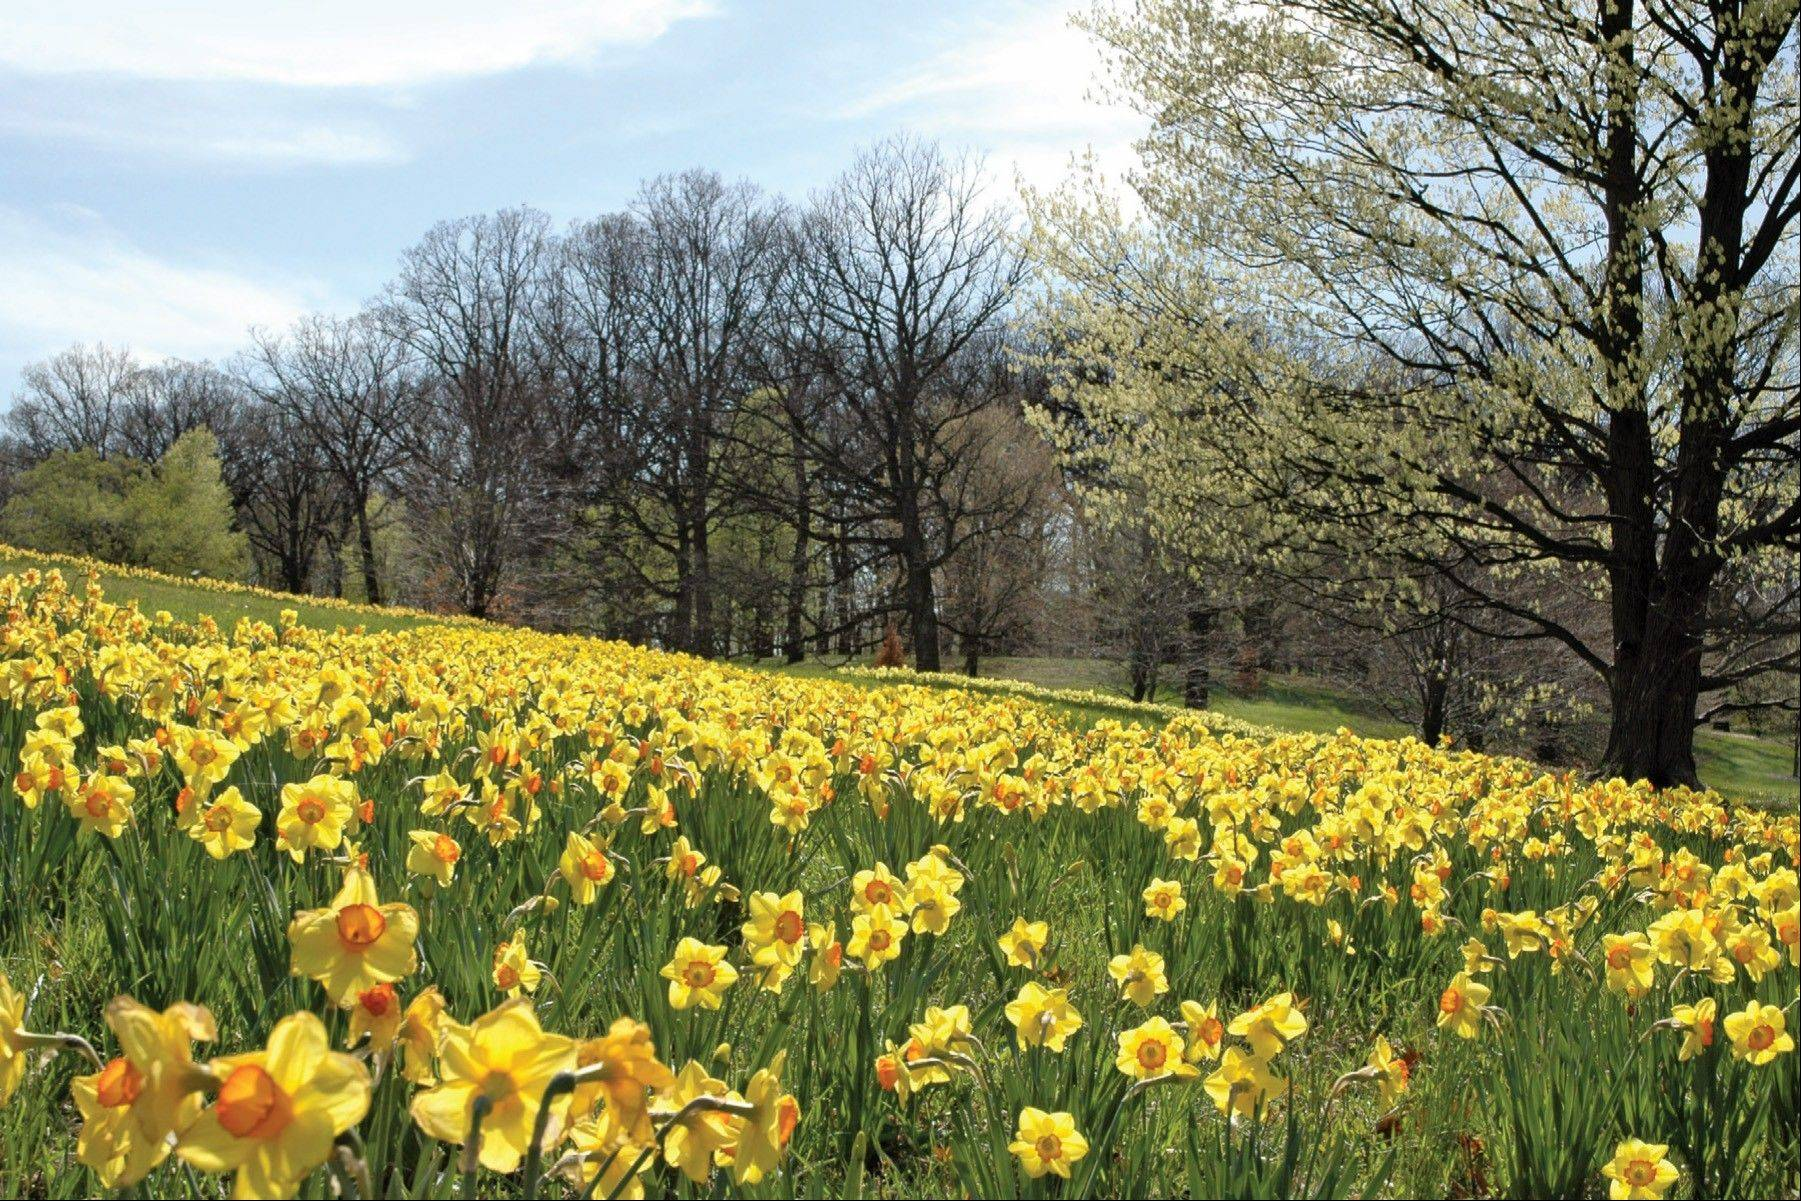 Once available in stores and restaurants, postcards now are found most often at tourist destinations or used for marketing. Morton Arboretum has just released a new series of four cards highlighting the four seasons on the Lisle museum's grounds.